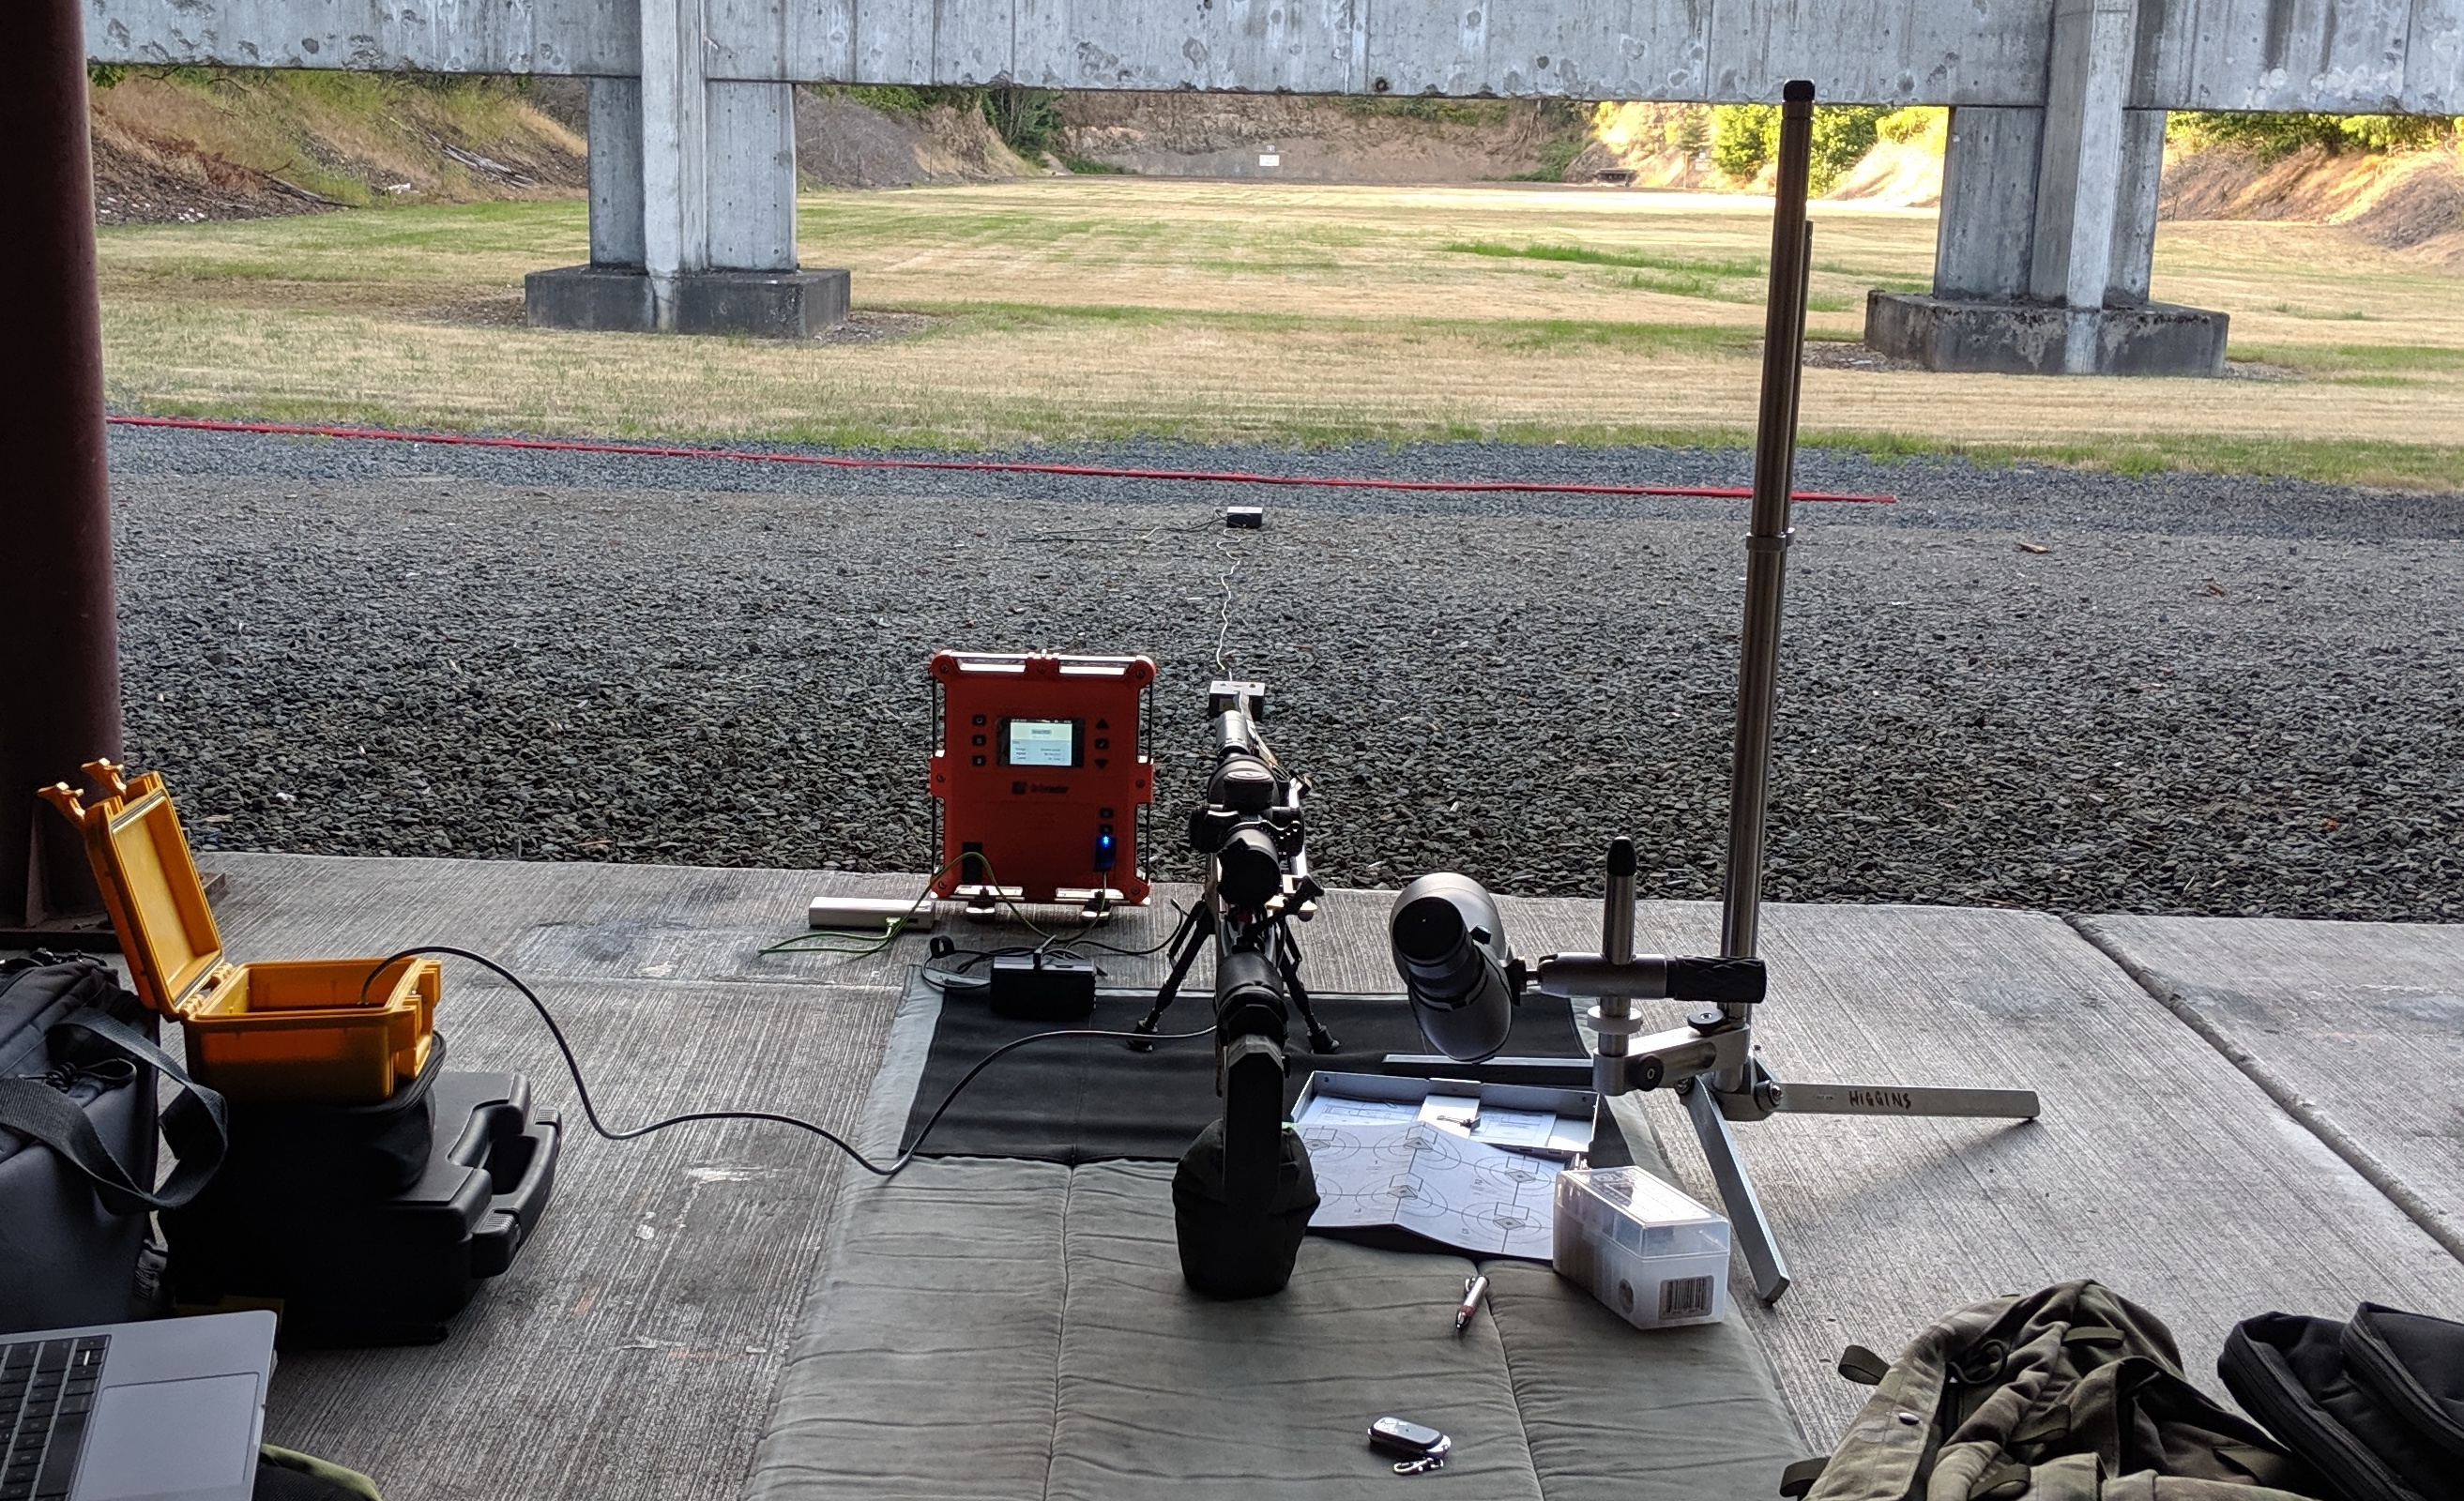 Set up for the 6.5mm Creedmoor bolt-action